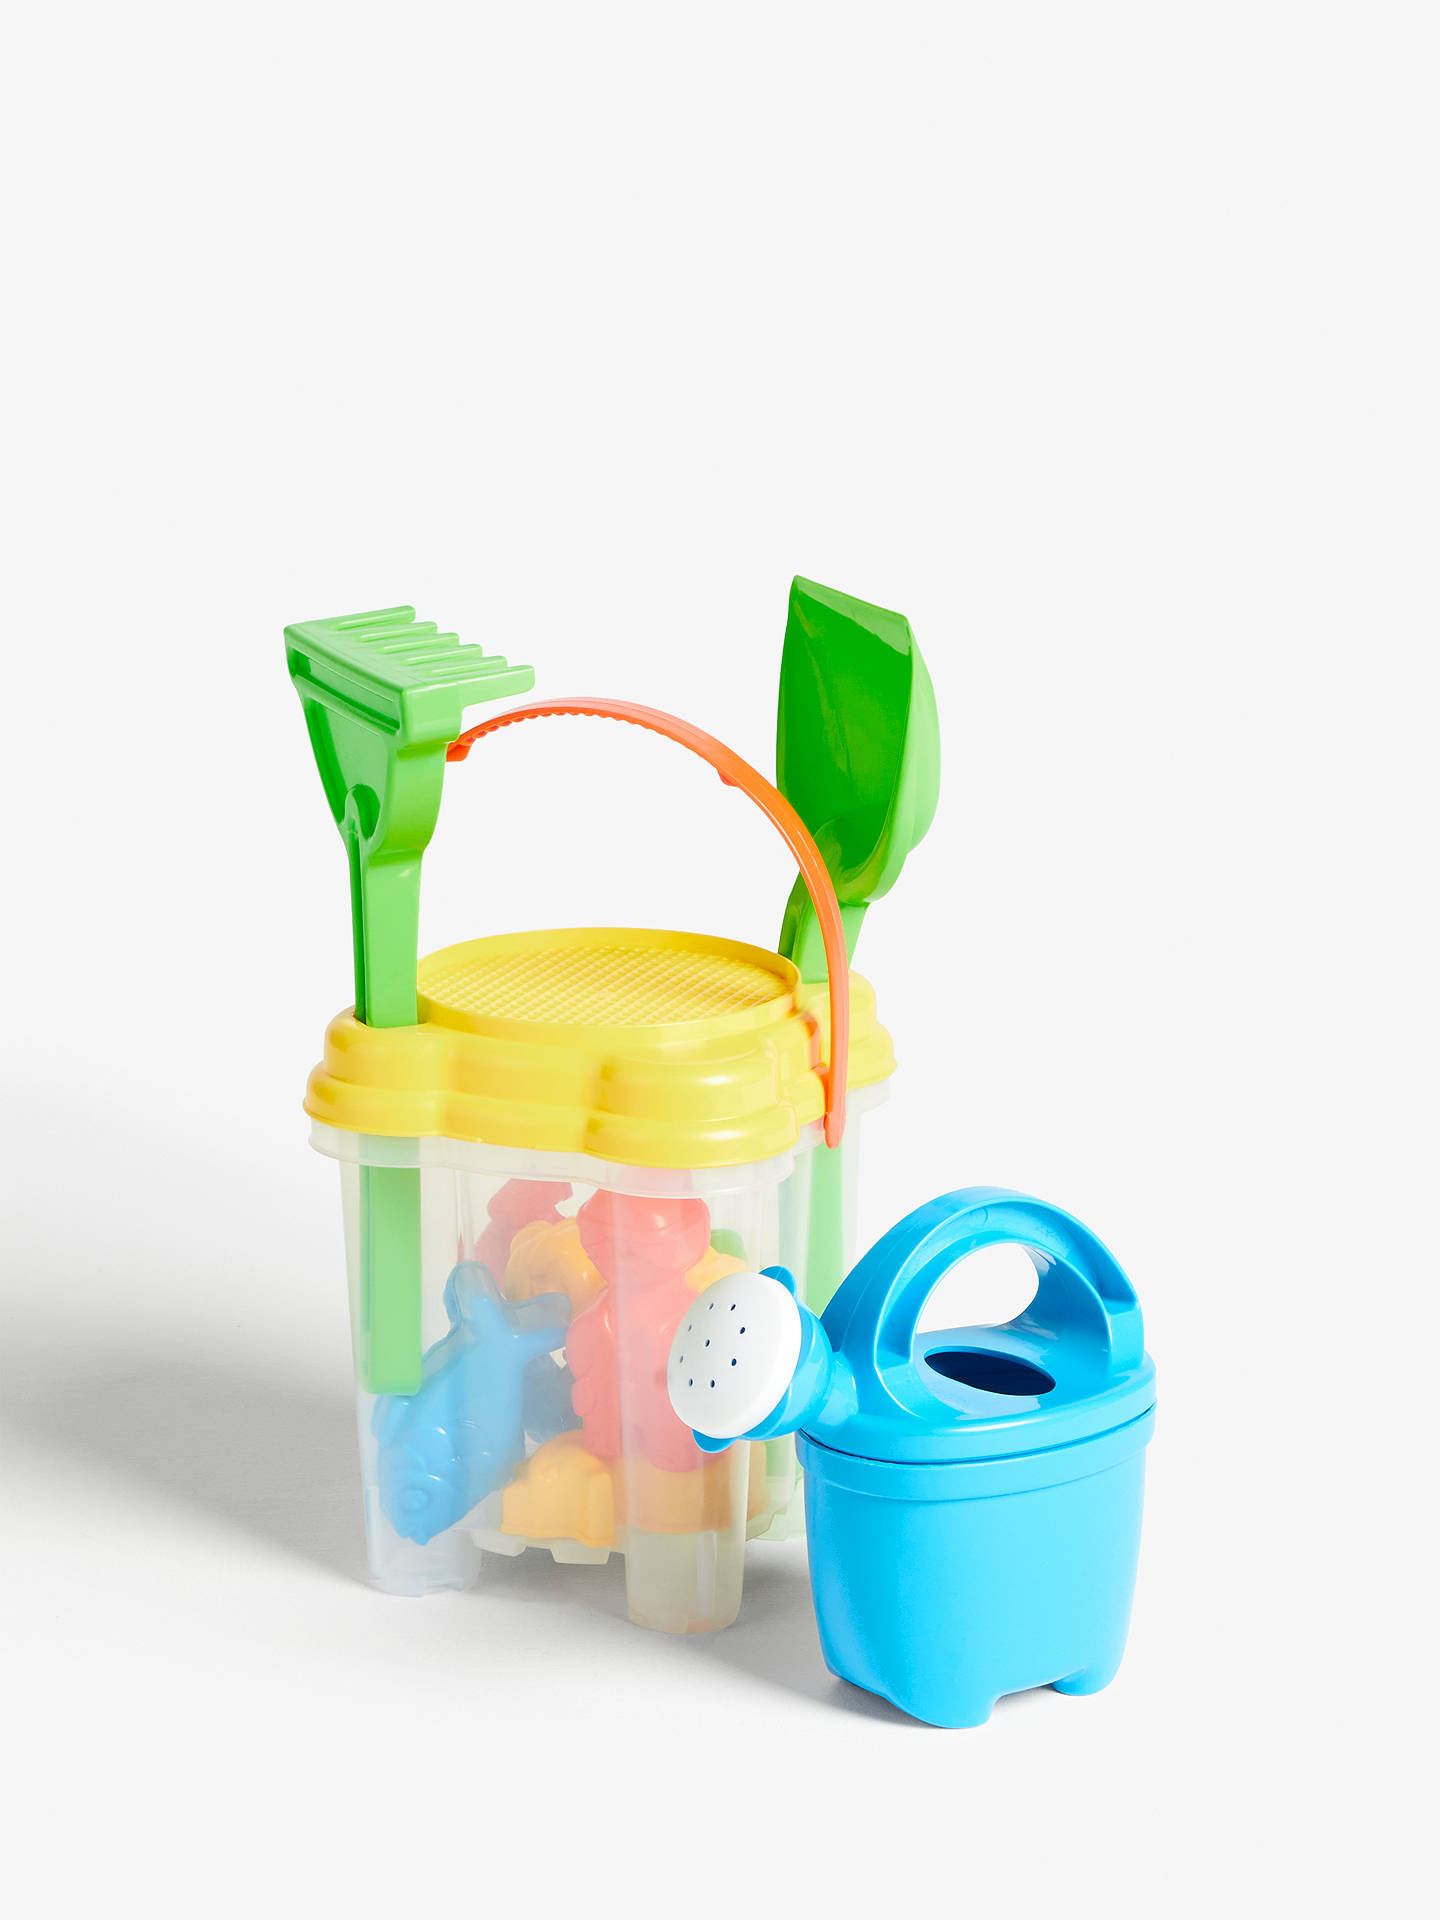 BuyJohn Lewis & Partners Bucket and Spade Set Online at johnlewis.com